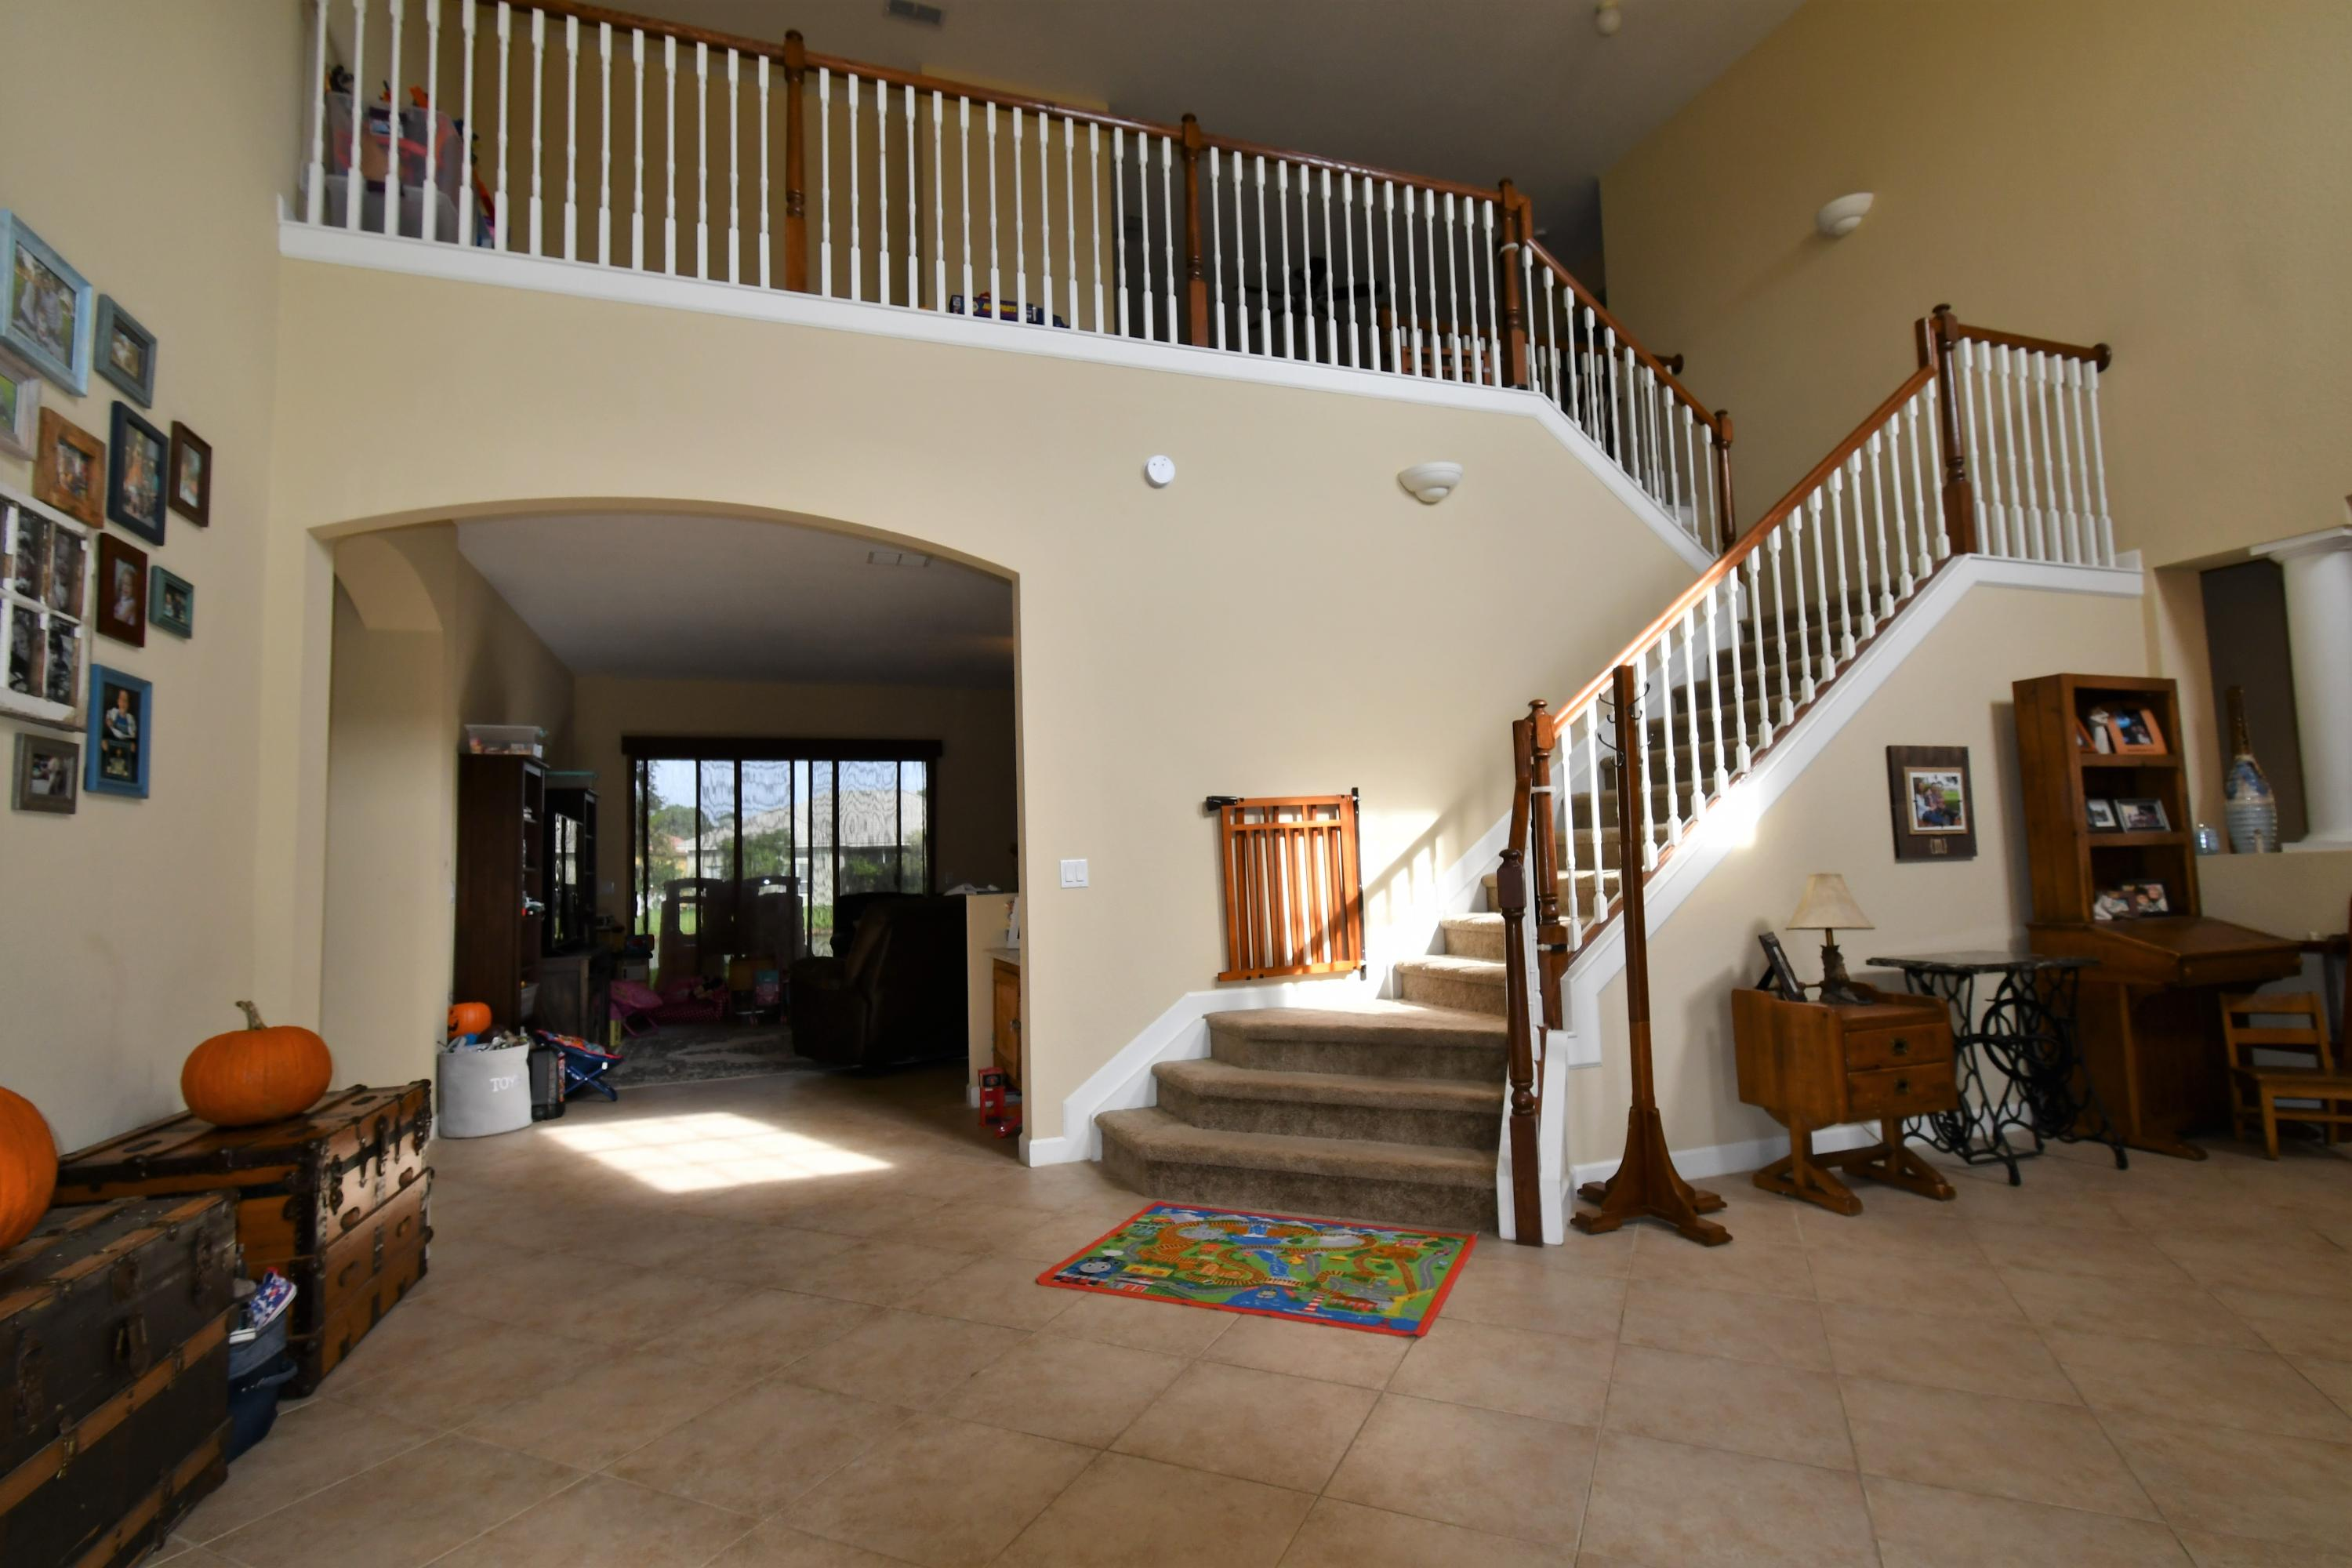 ST JAMES GOLF COURSE HOMES FOR SALE